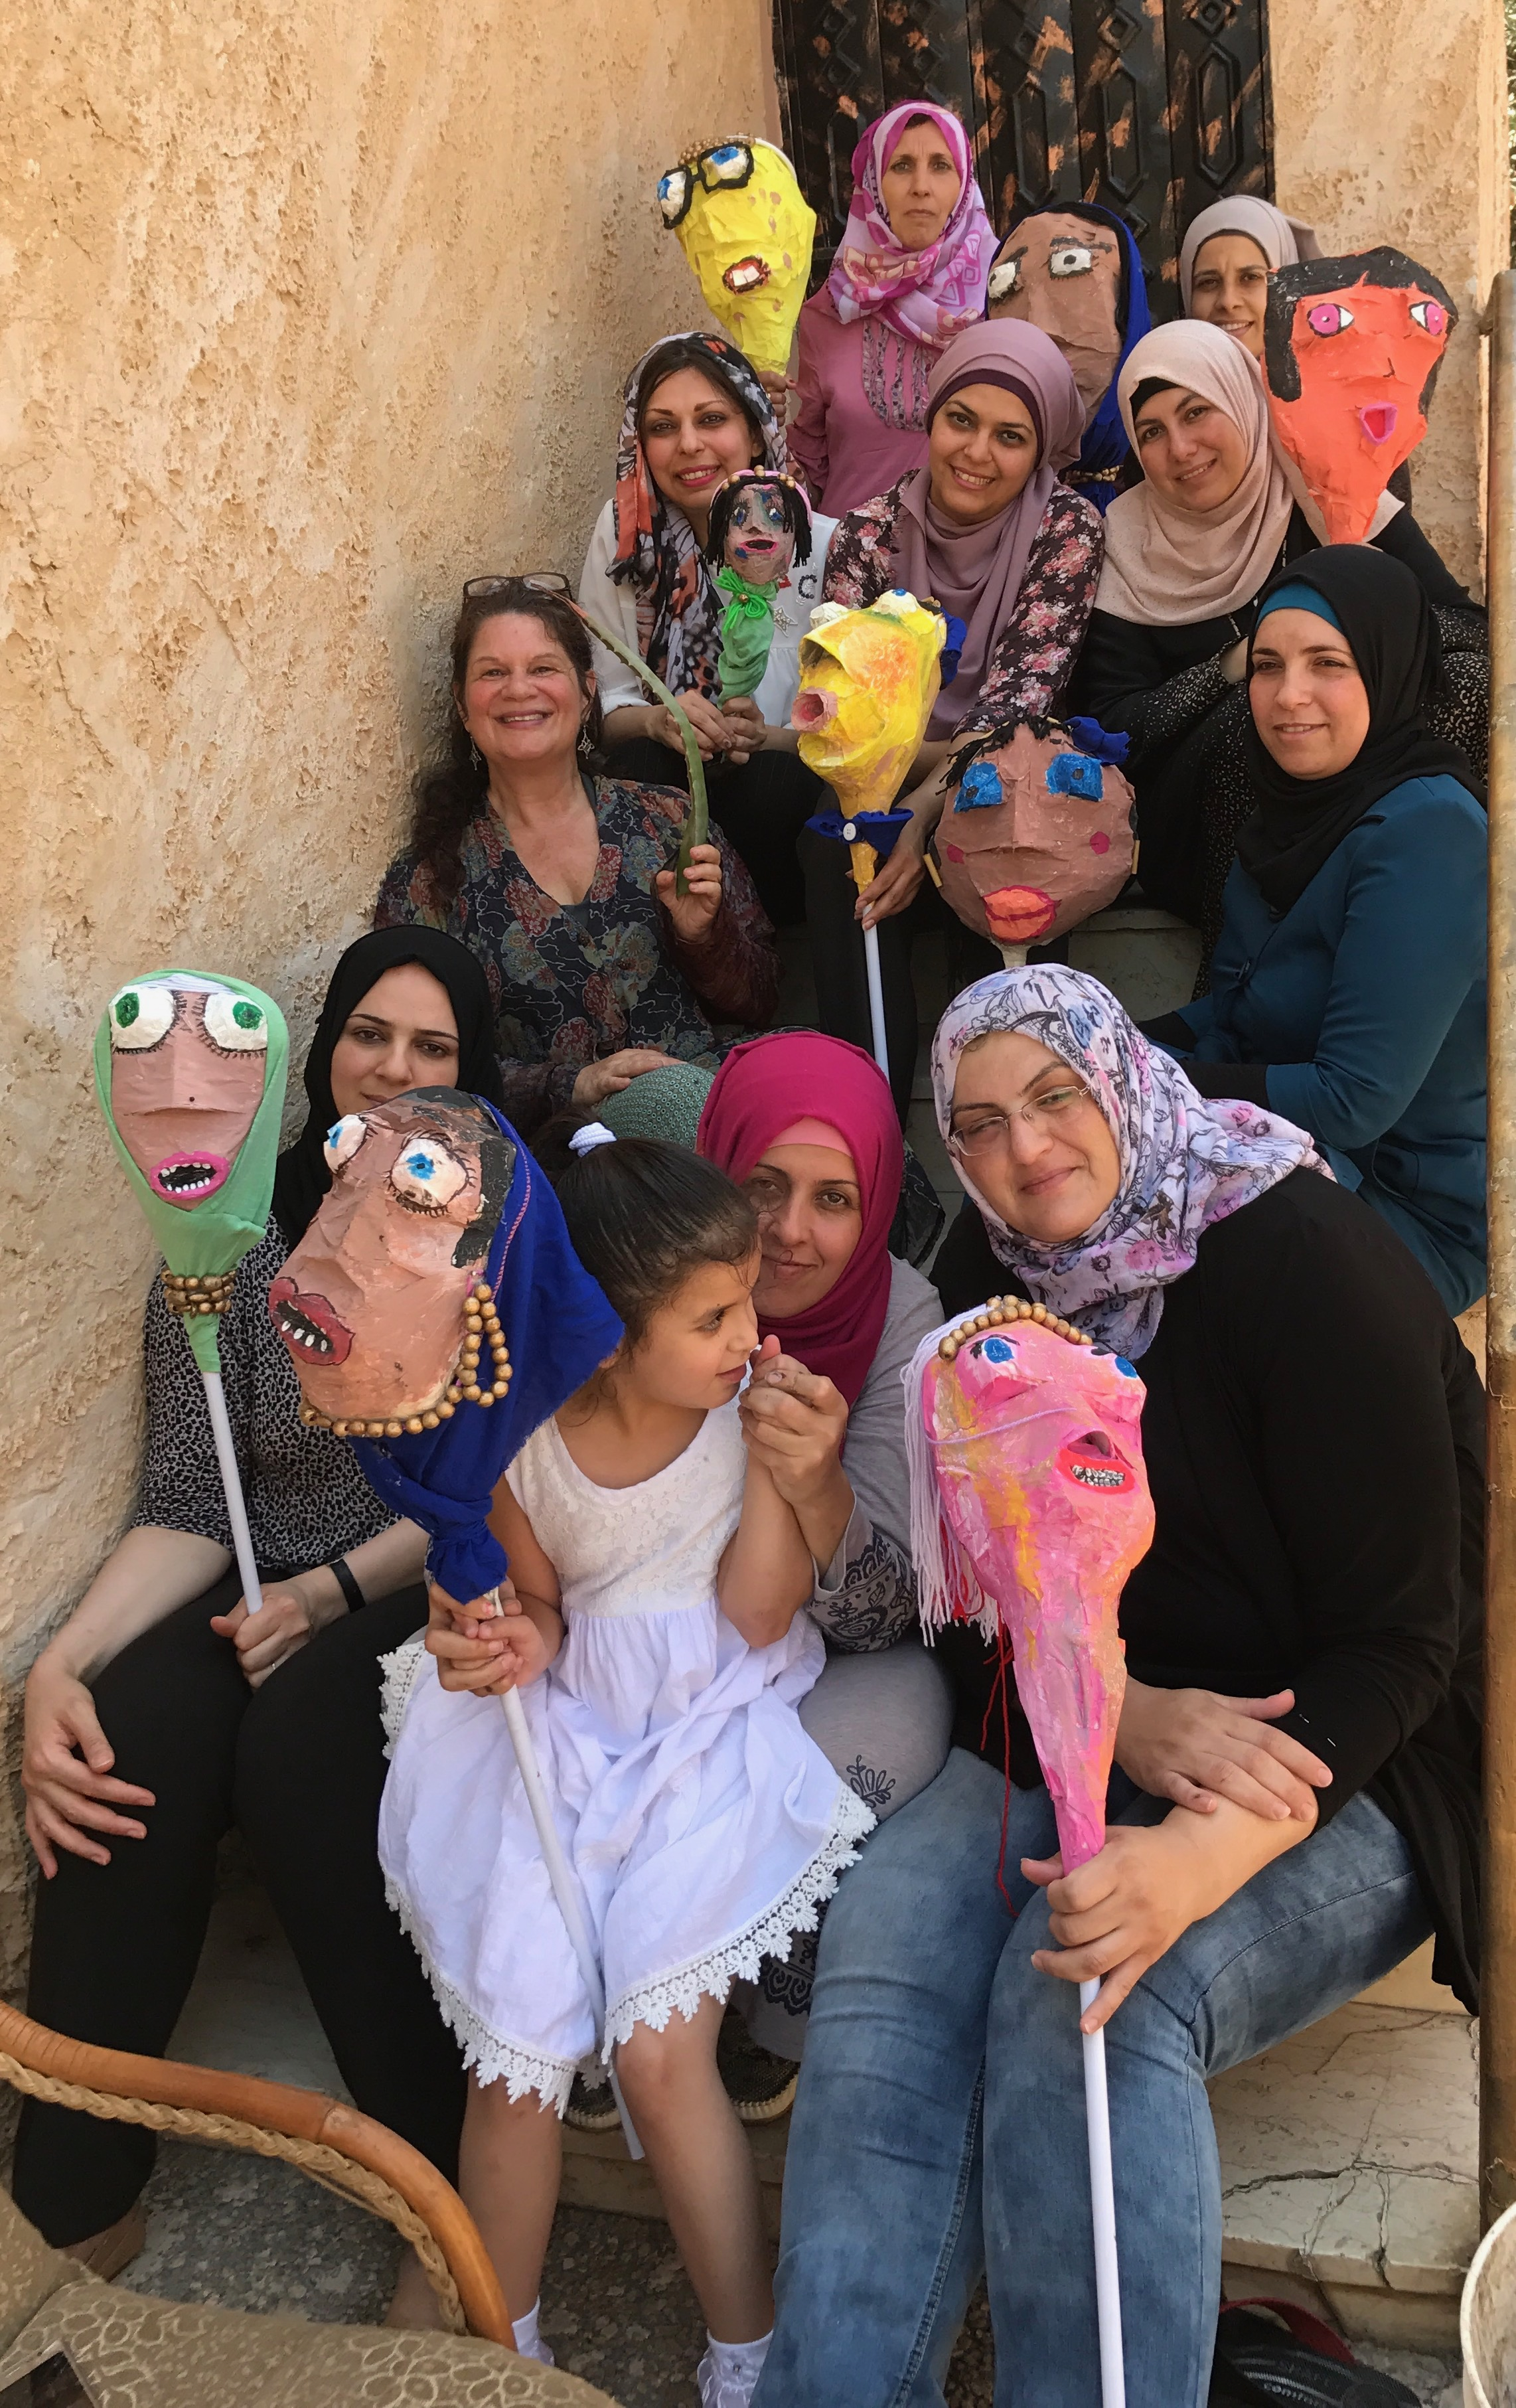 a group of smiling people holding puppets